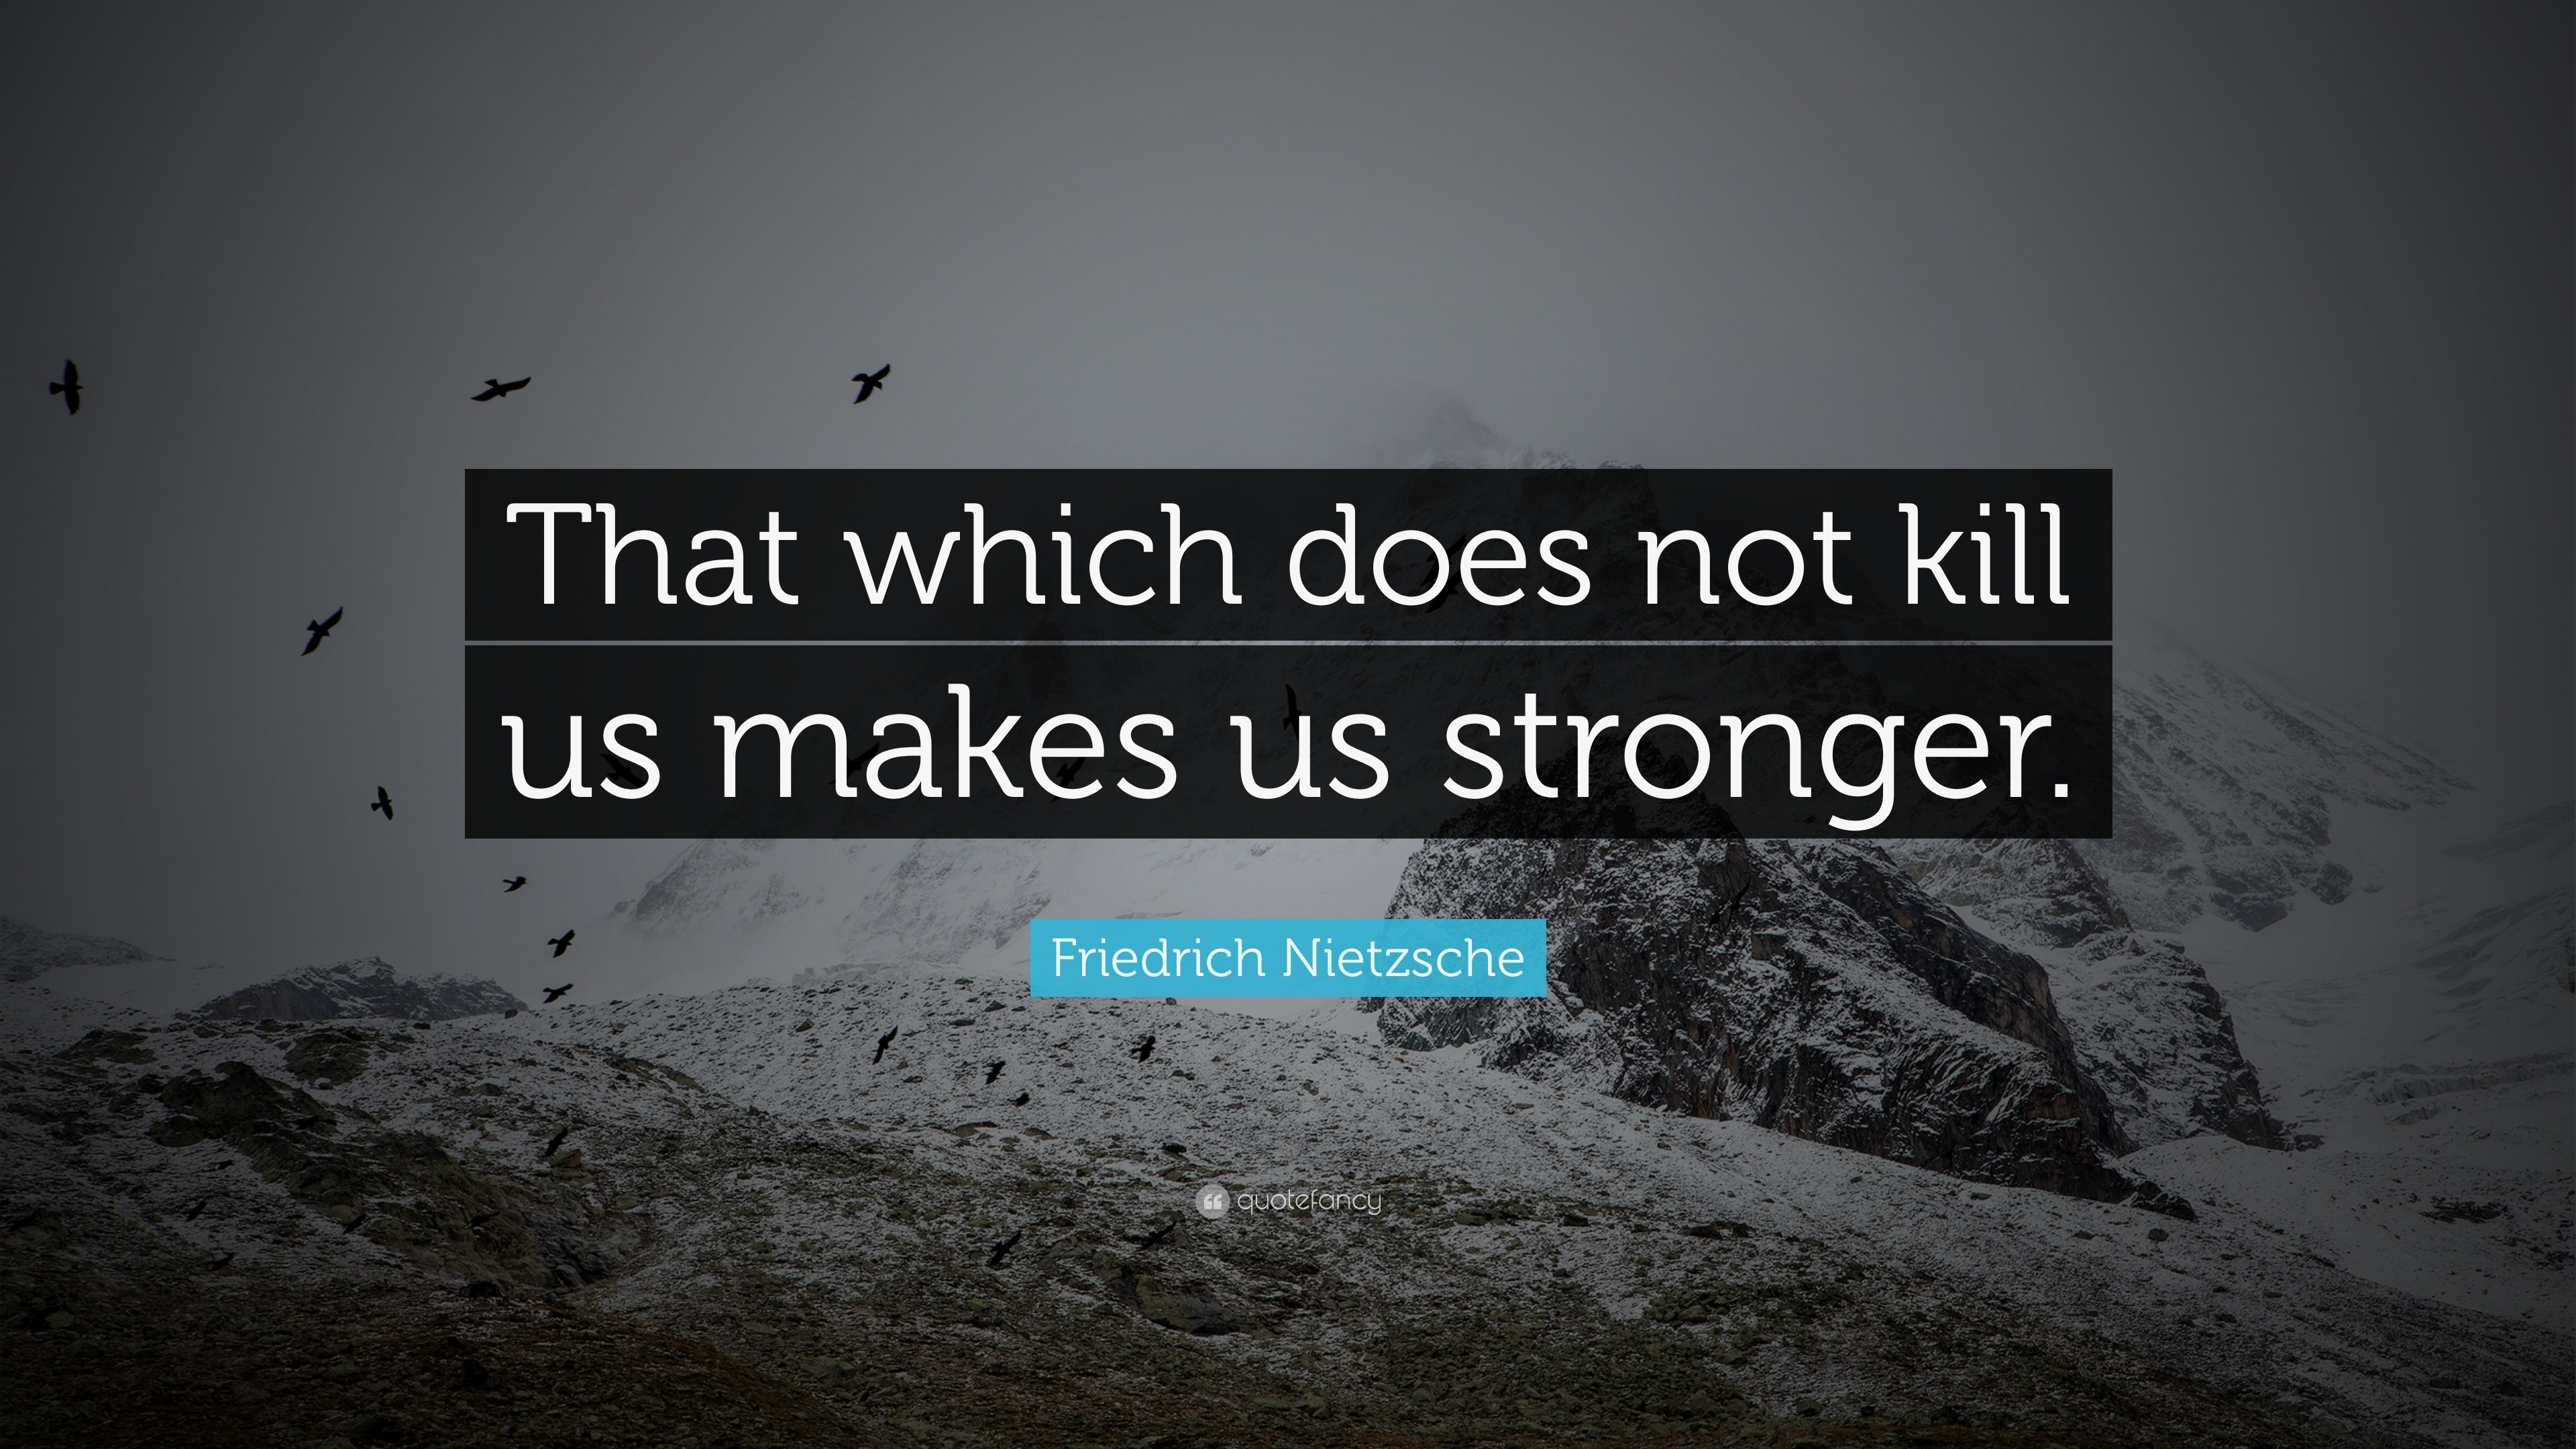 Positive Quotes: U201cThat Which Does Not Kill Us Makes Us Stronger.u201d U2014